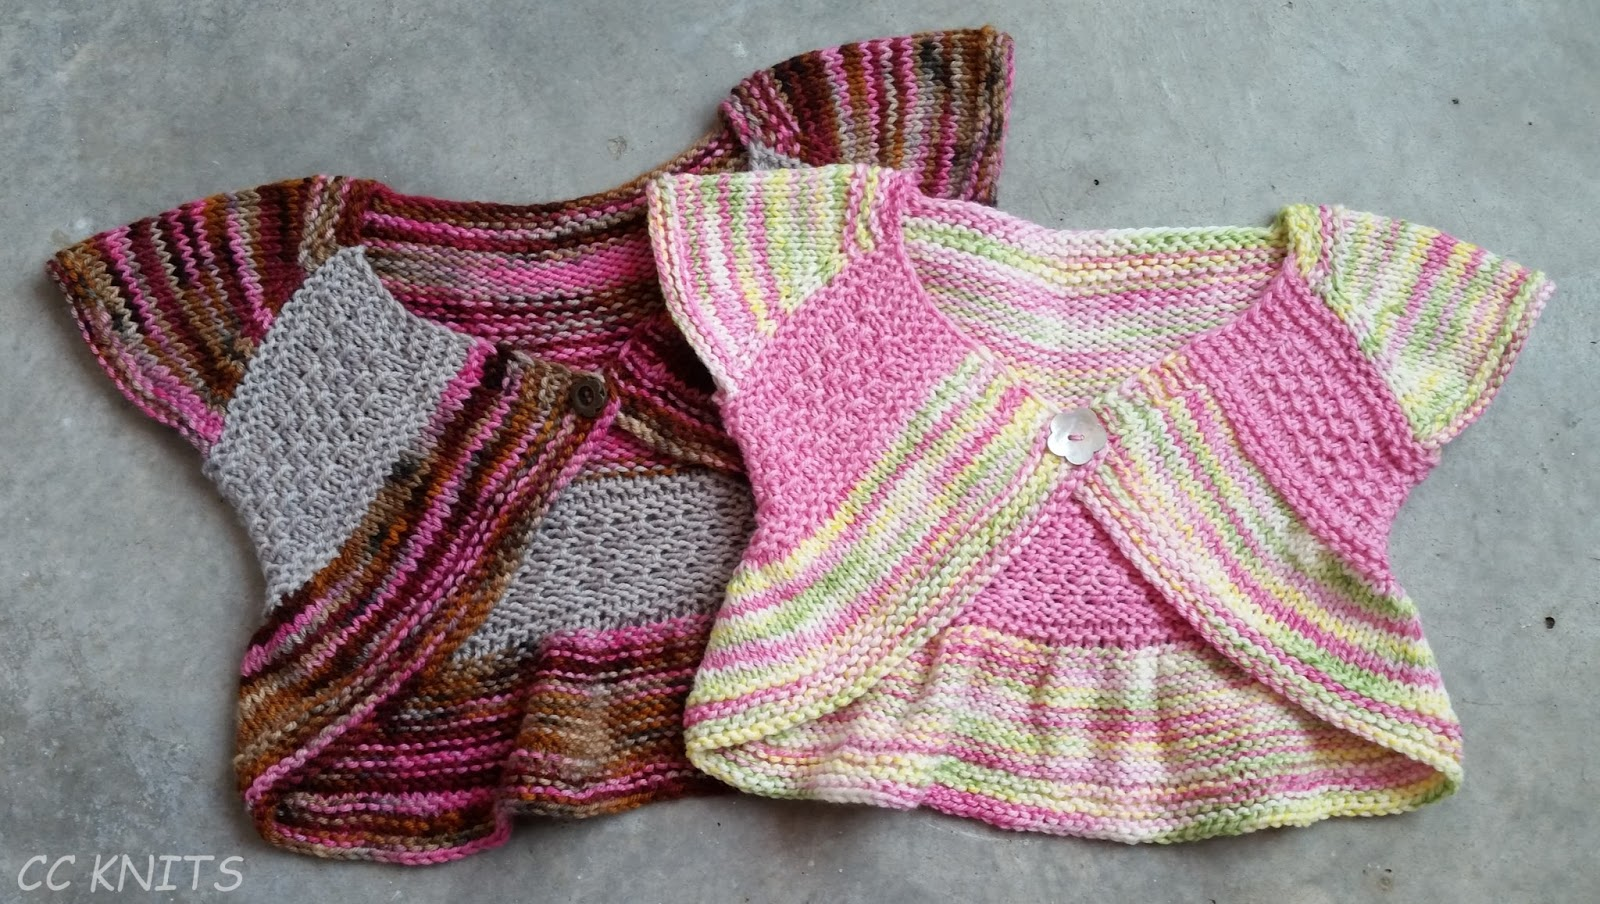 Shrug Patterns To Knit : CC Knits: Recommended pattern: Entrechat Shrug